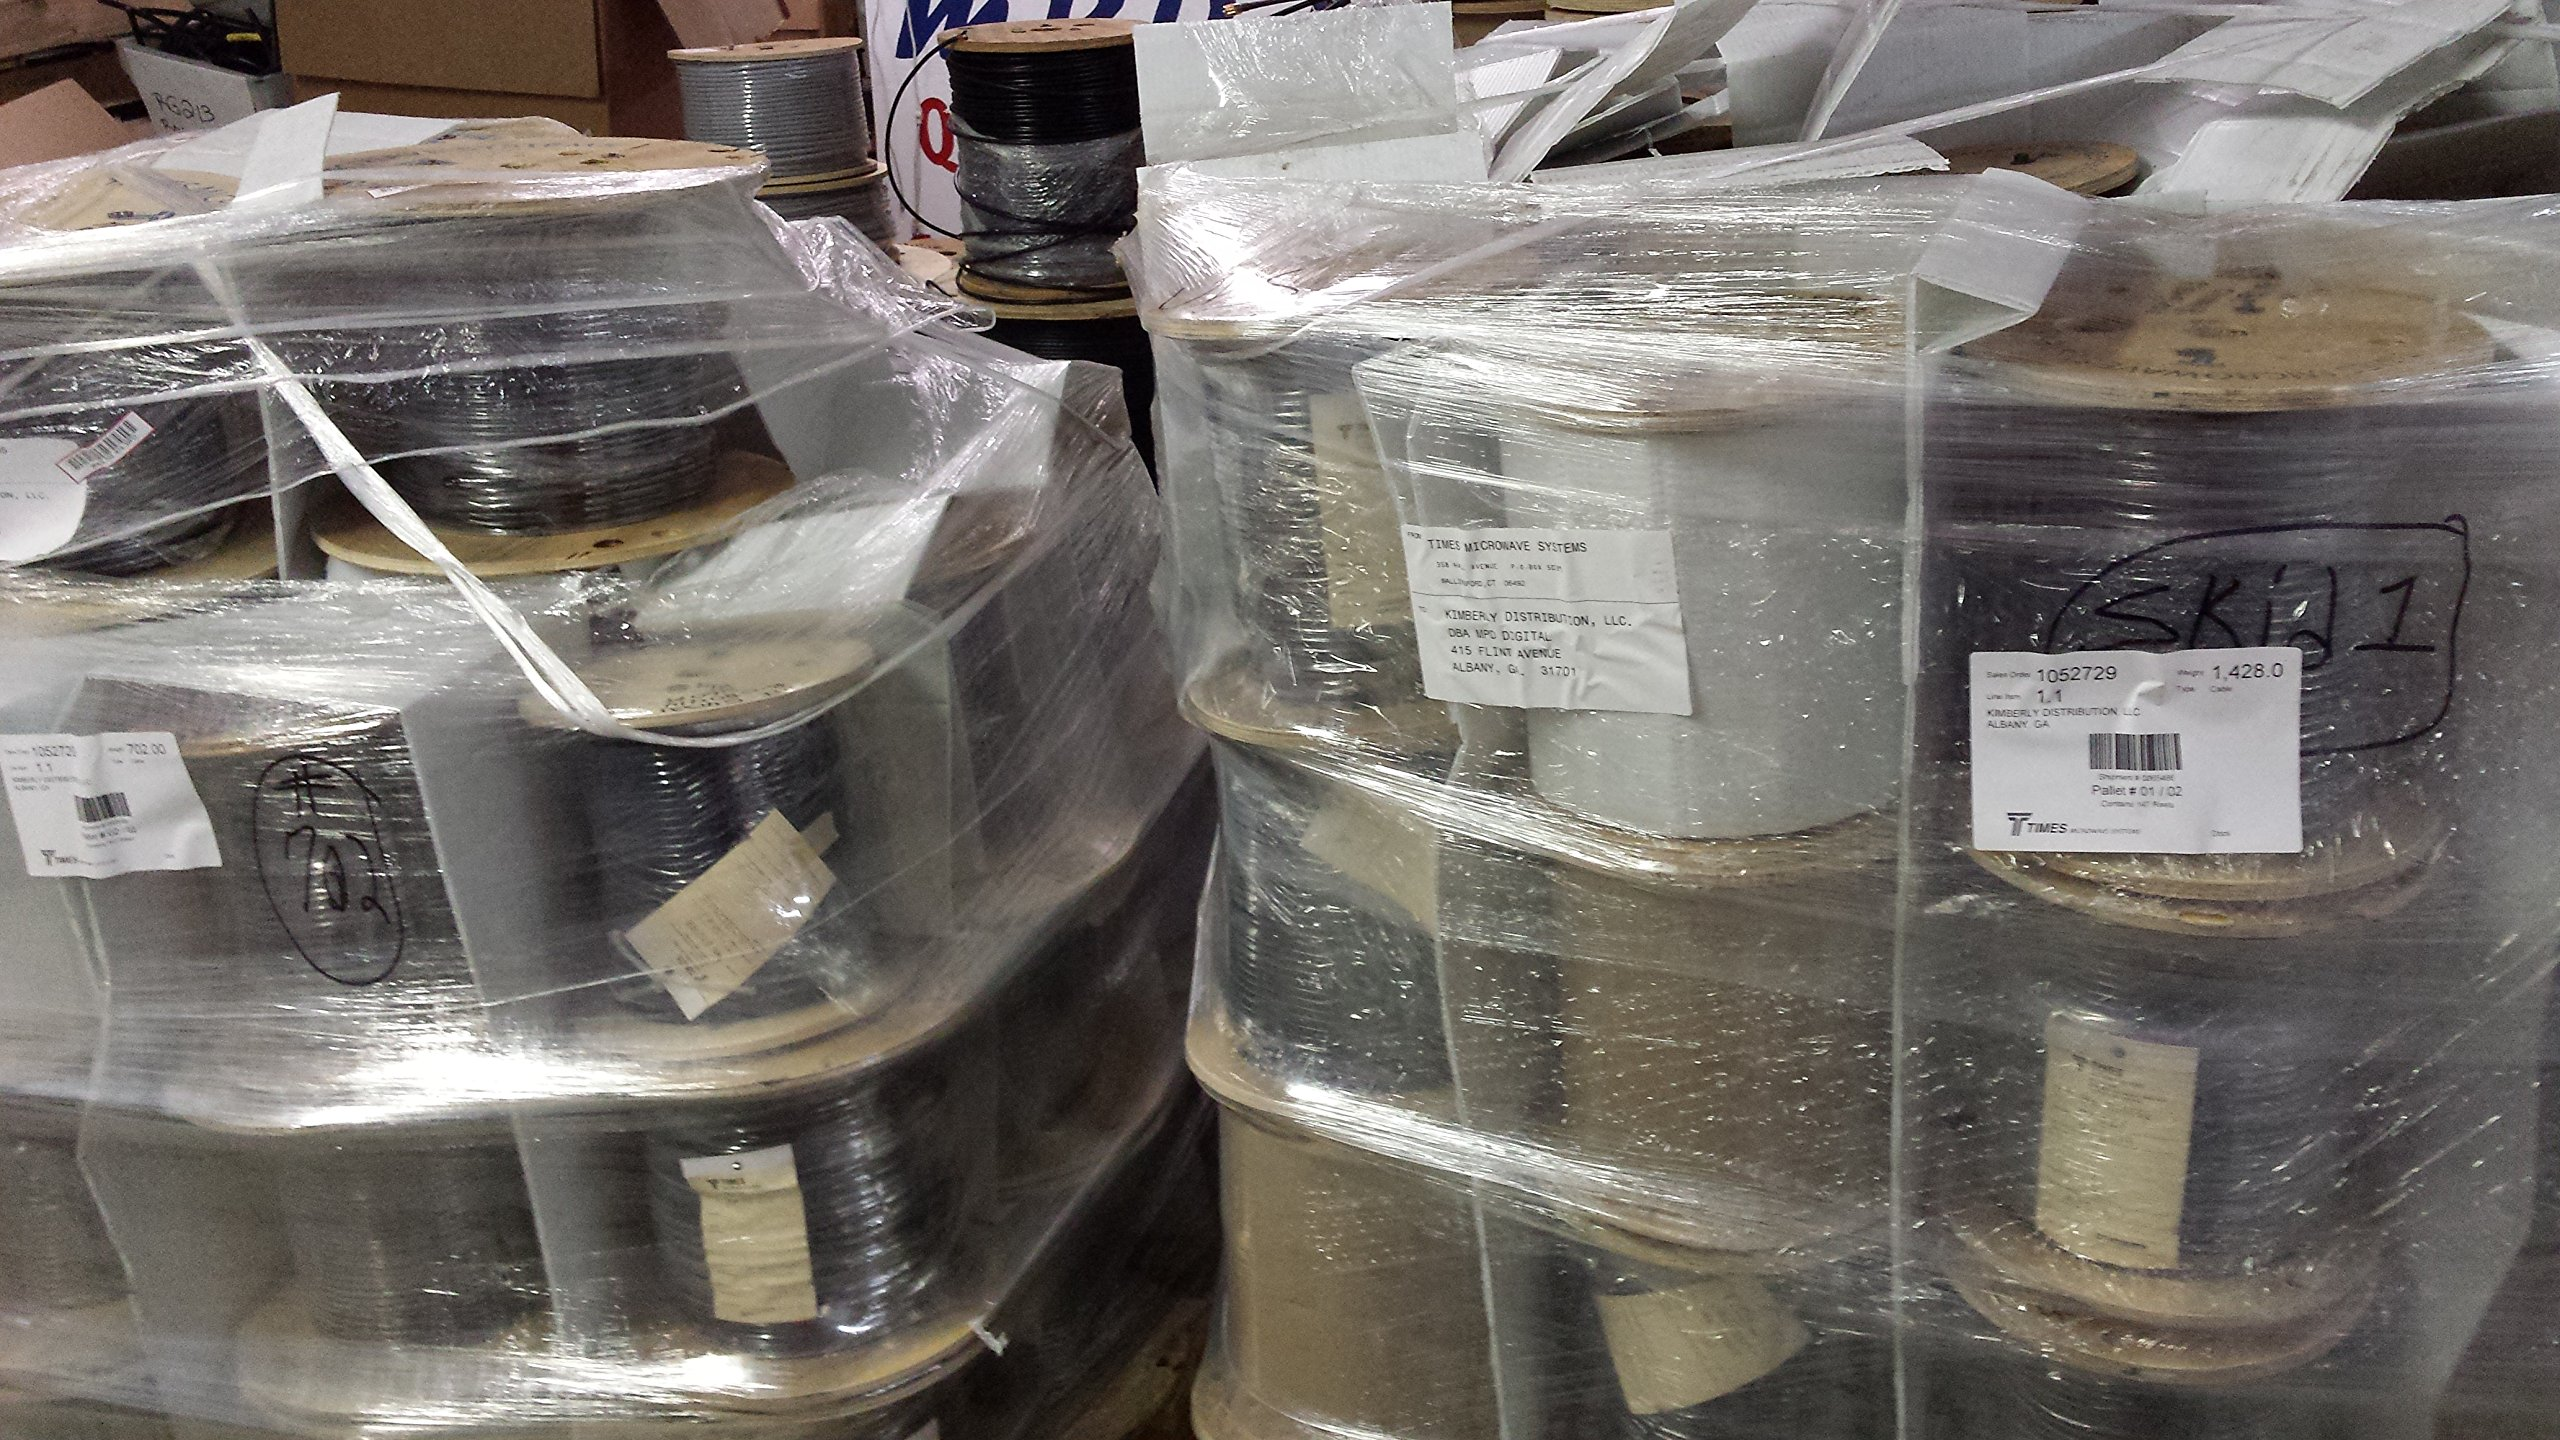 Times Microwave LMR400 Bulk Coaxial Cable Reels | LMR-400 coax on wooden spool Plus MPD Digital (TM) Magnet (350 ft)